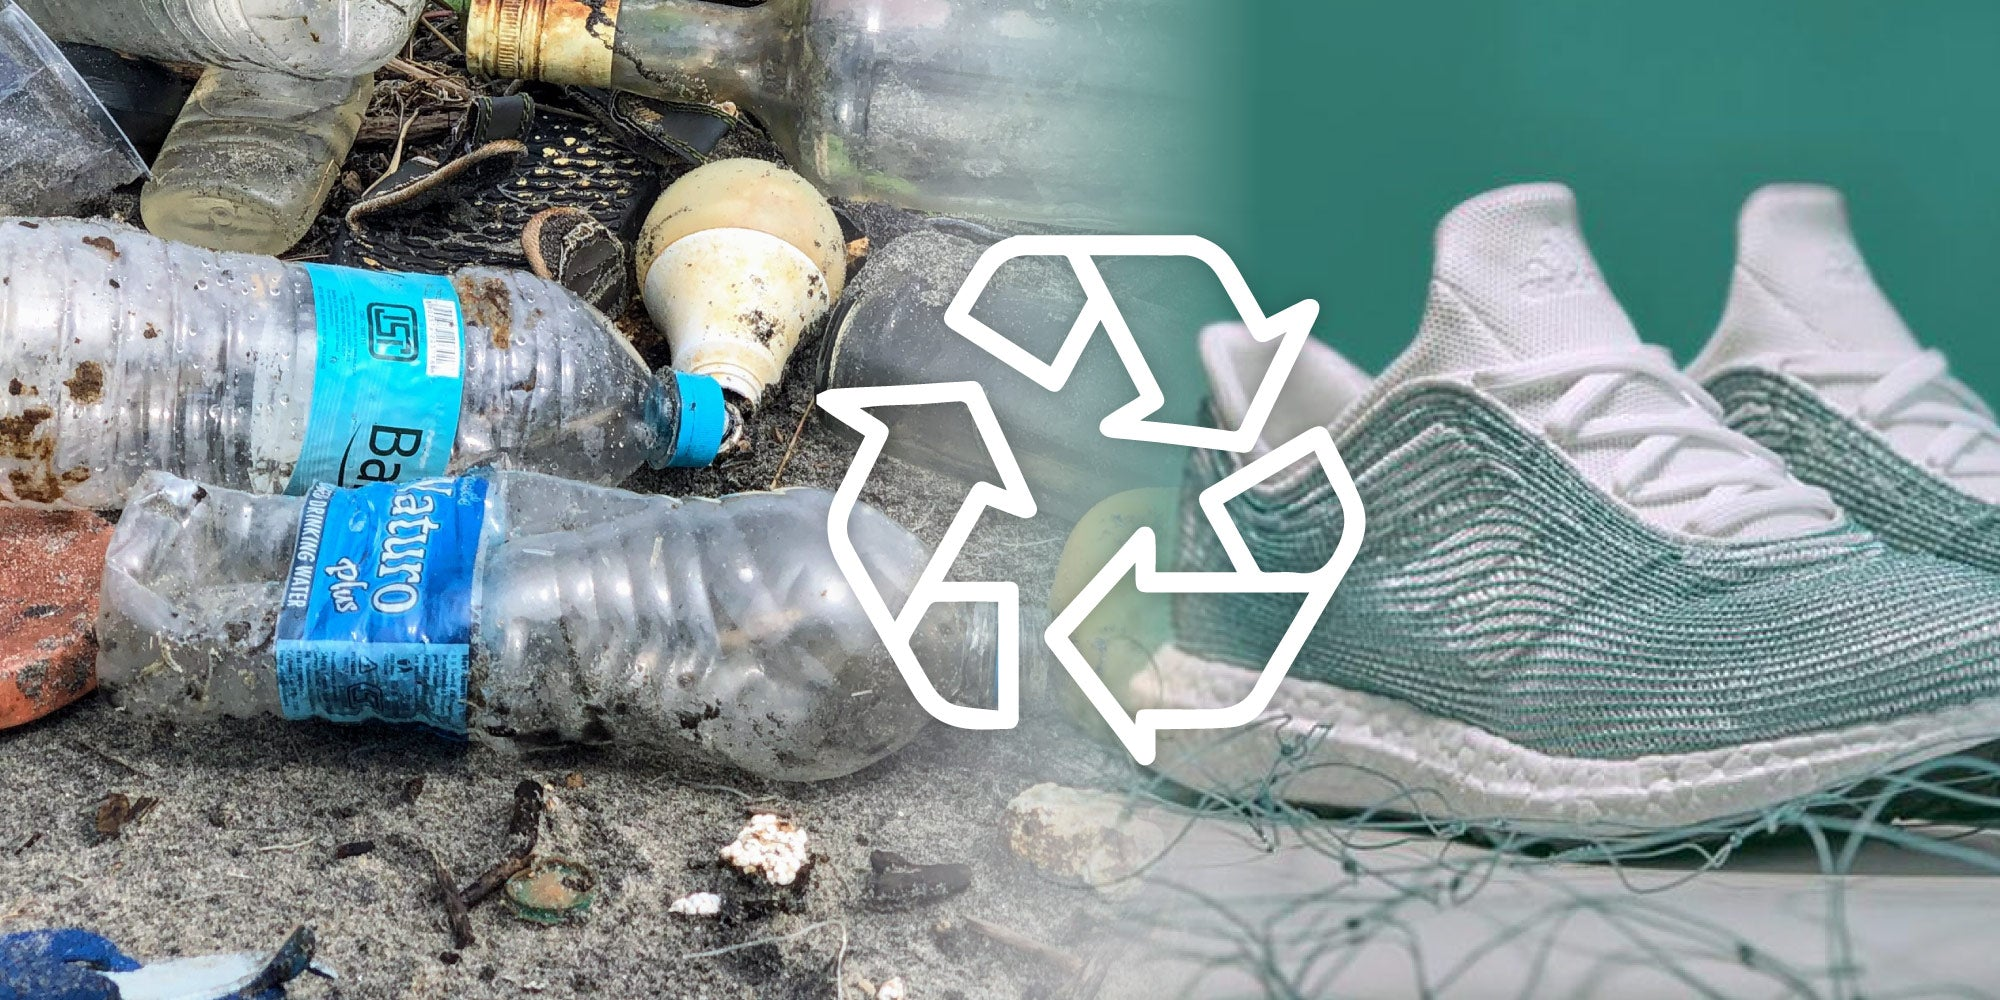 dual images showing ocean plastic being recycled into new products